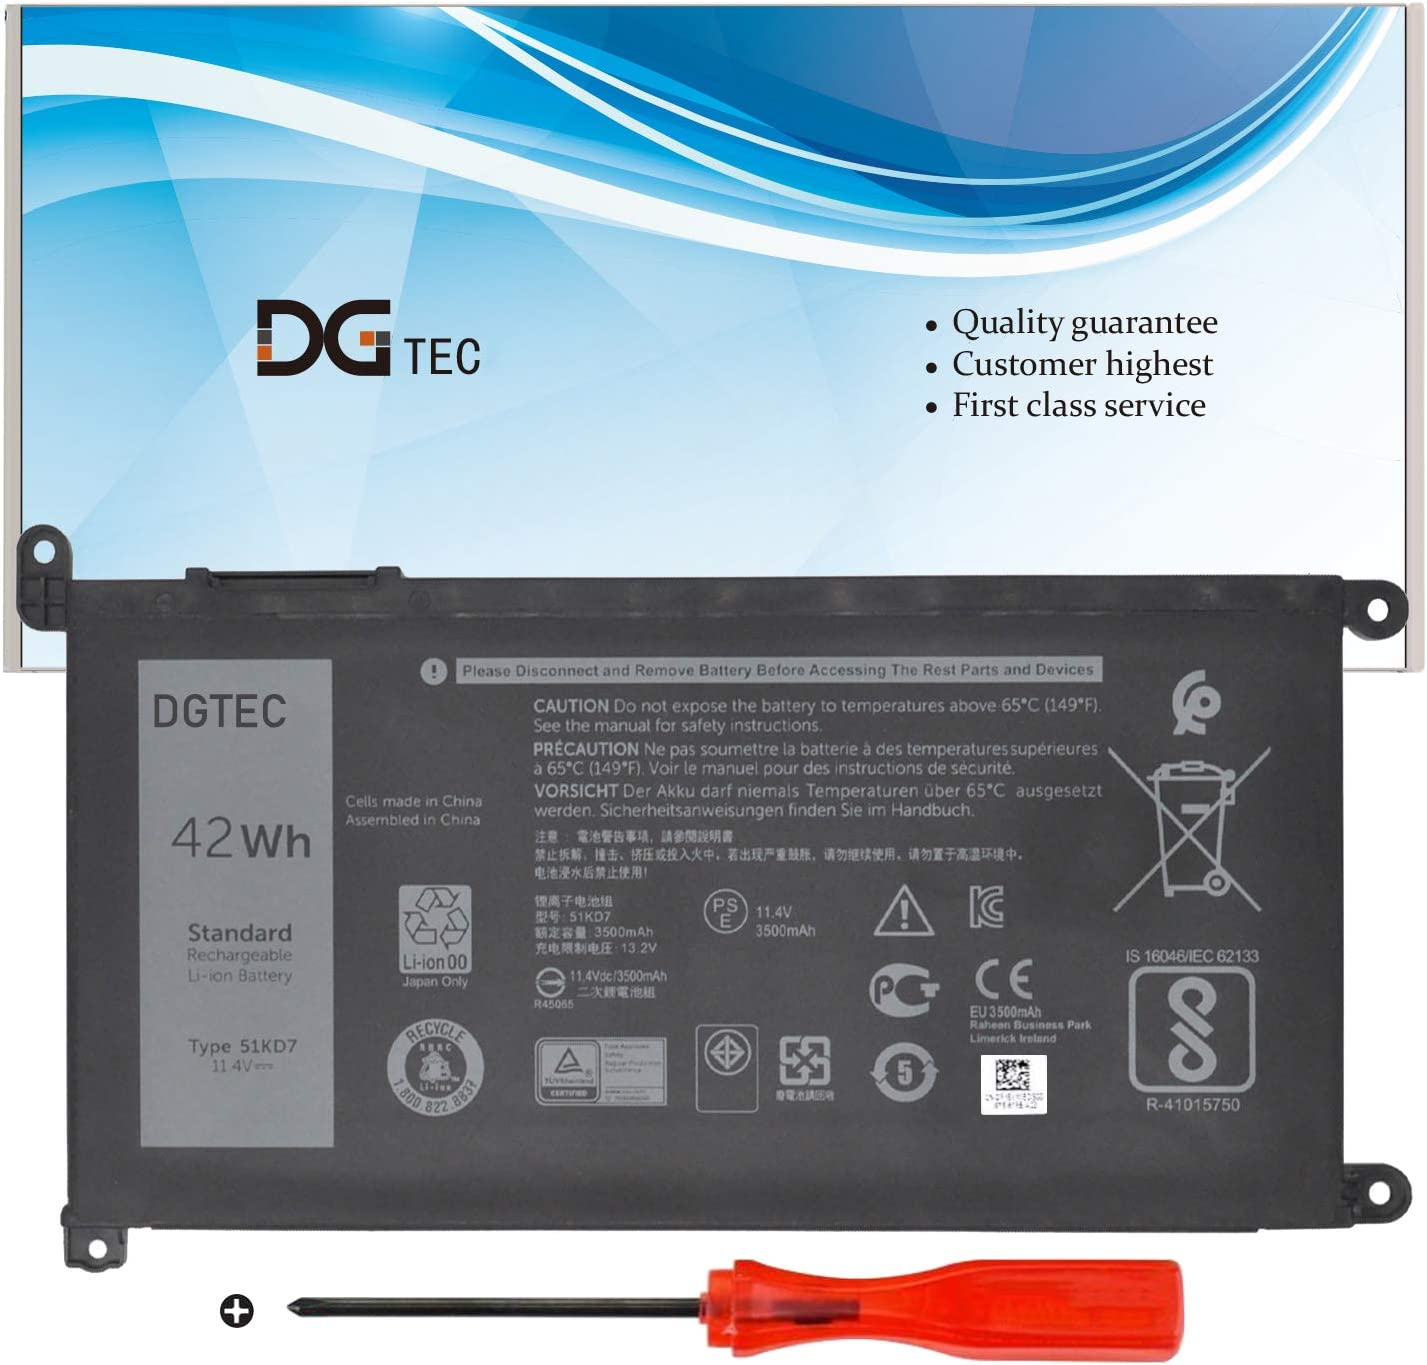 DGTEC 51KD7 Laptop Battery Replacement for Dell Chromebook 11 3180 3189 Series Y07HK FY8XM 0FY8XM (11.4V 42Wh/3500mAh/3-Cell)